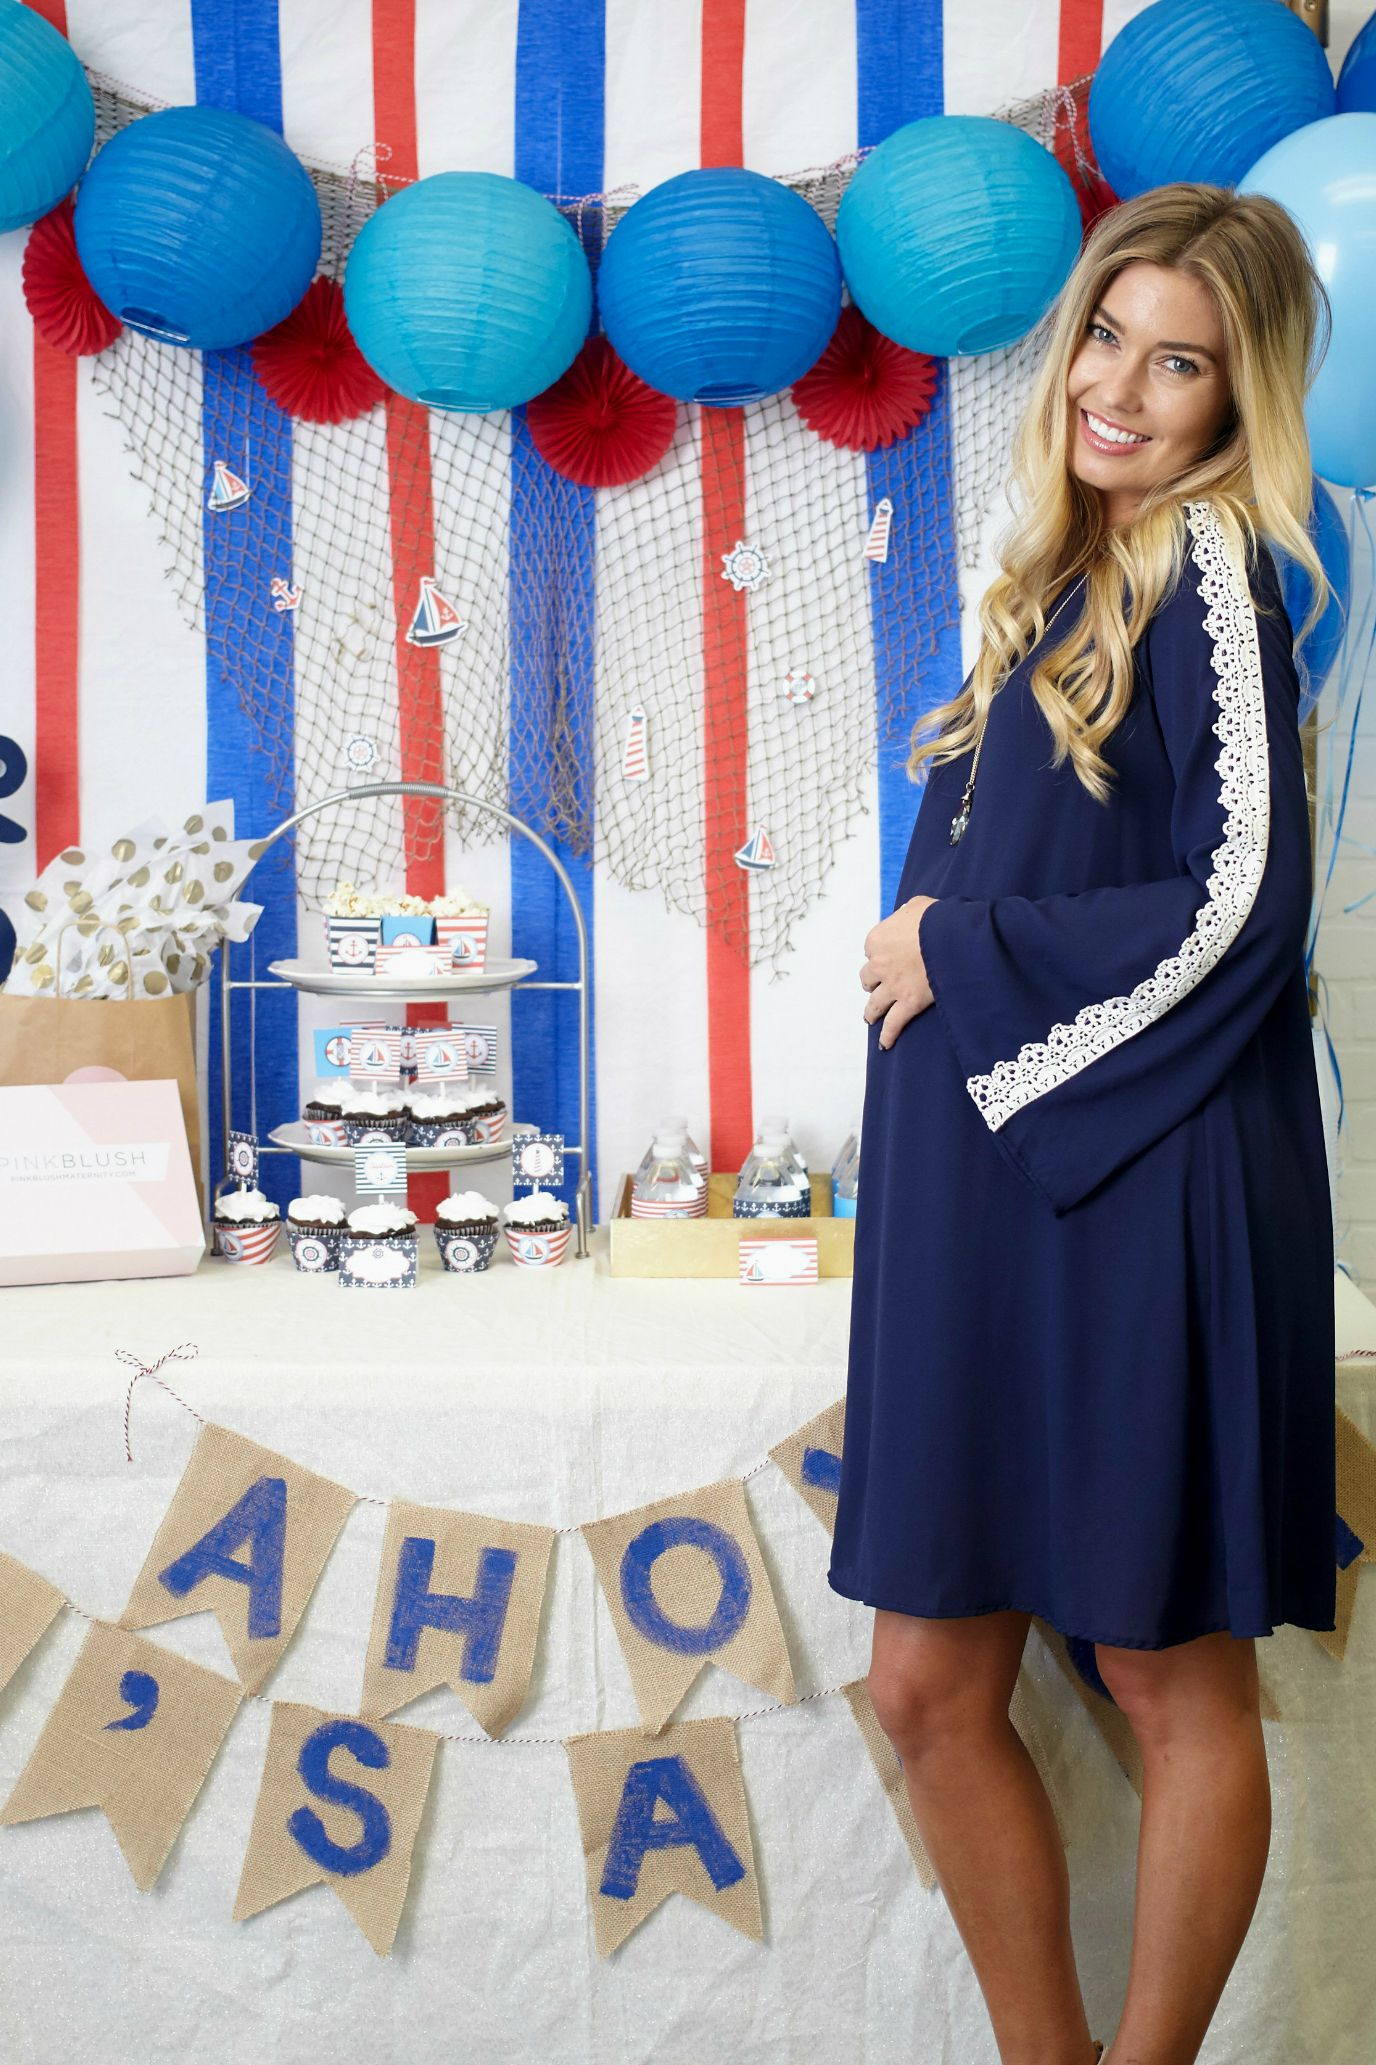 Ahoy It s a Boy Baby Shower Inspiration and Style for a boy